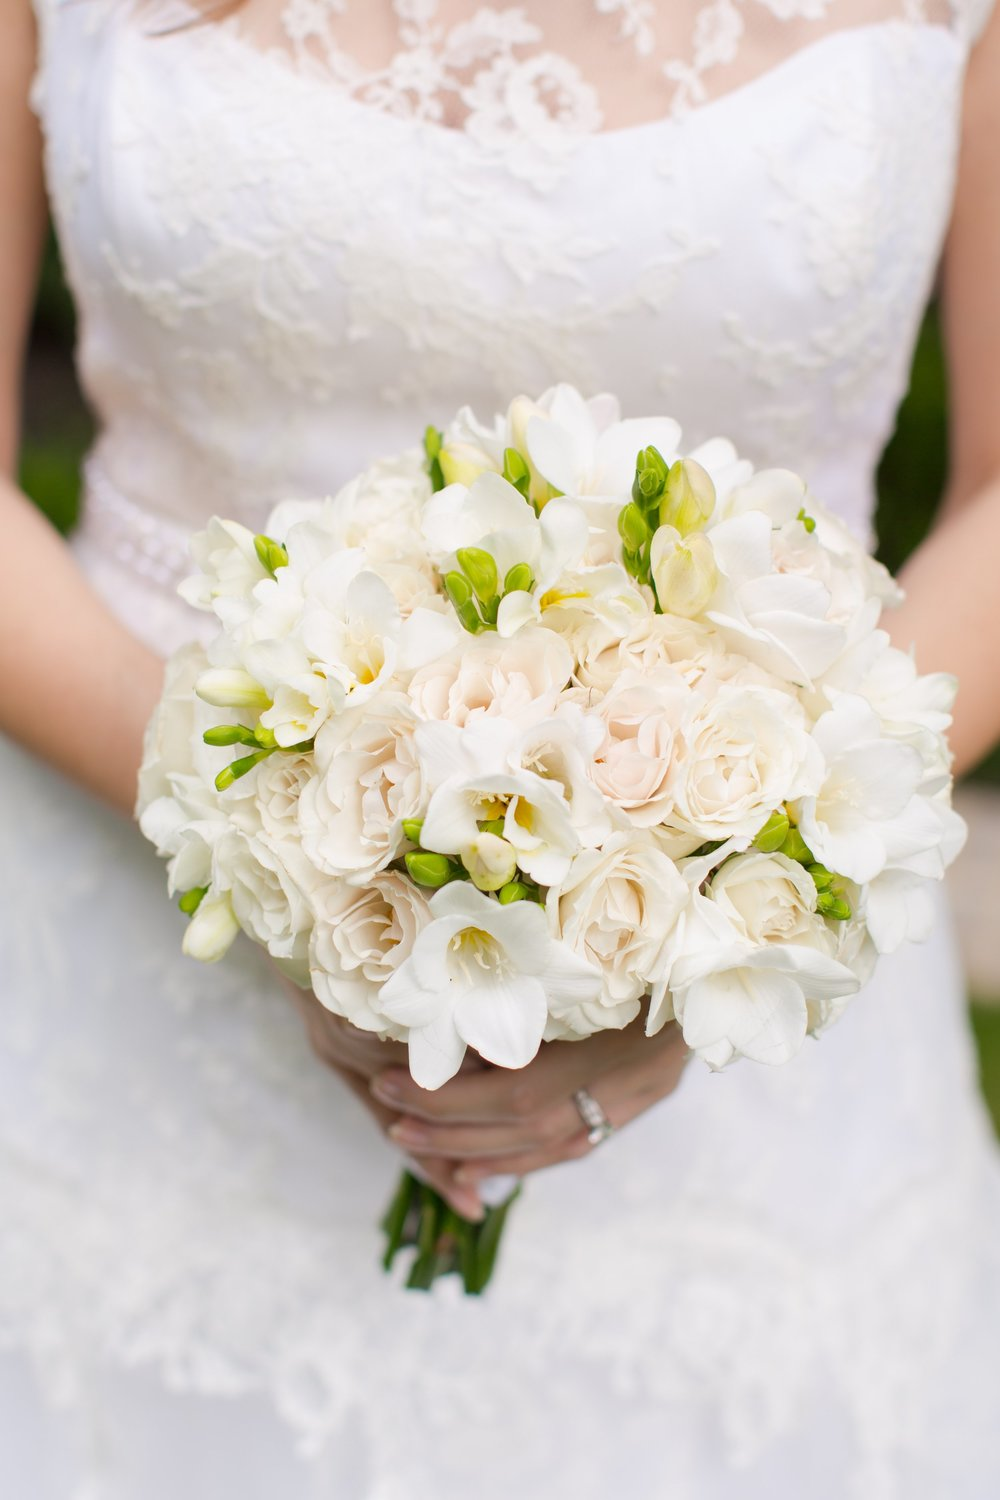 Marianna wanted a timeless look for her wedding, and this classic cream bridal bouquet by  Atlanta wedding designer A Divine Event  was the icing on the cake. To view more from Michael and Marianna's  classic Greystone at Piedmont Park wedding, click here .